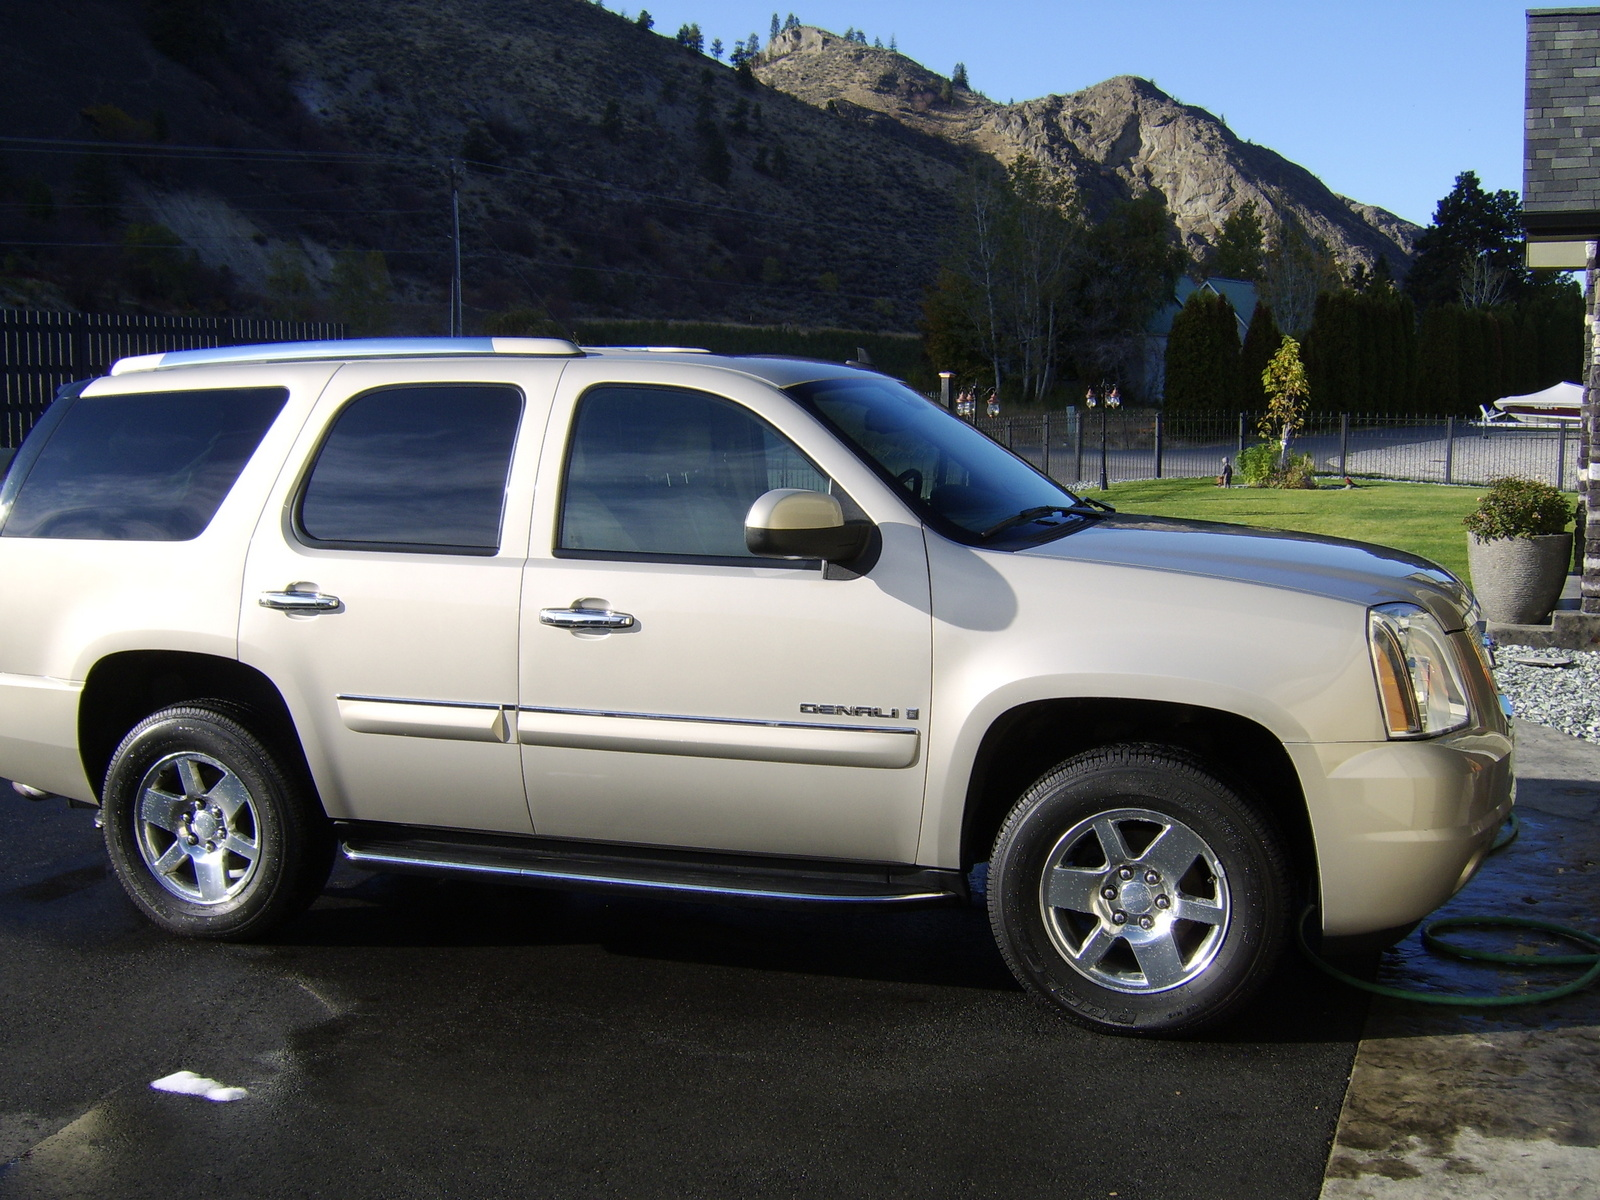 2007 chevy yukon reviews quad receptacle wiring diagram gmc denali pictures cargurus